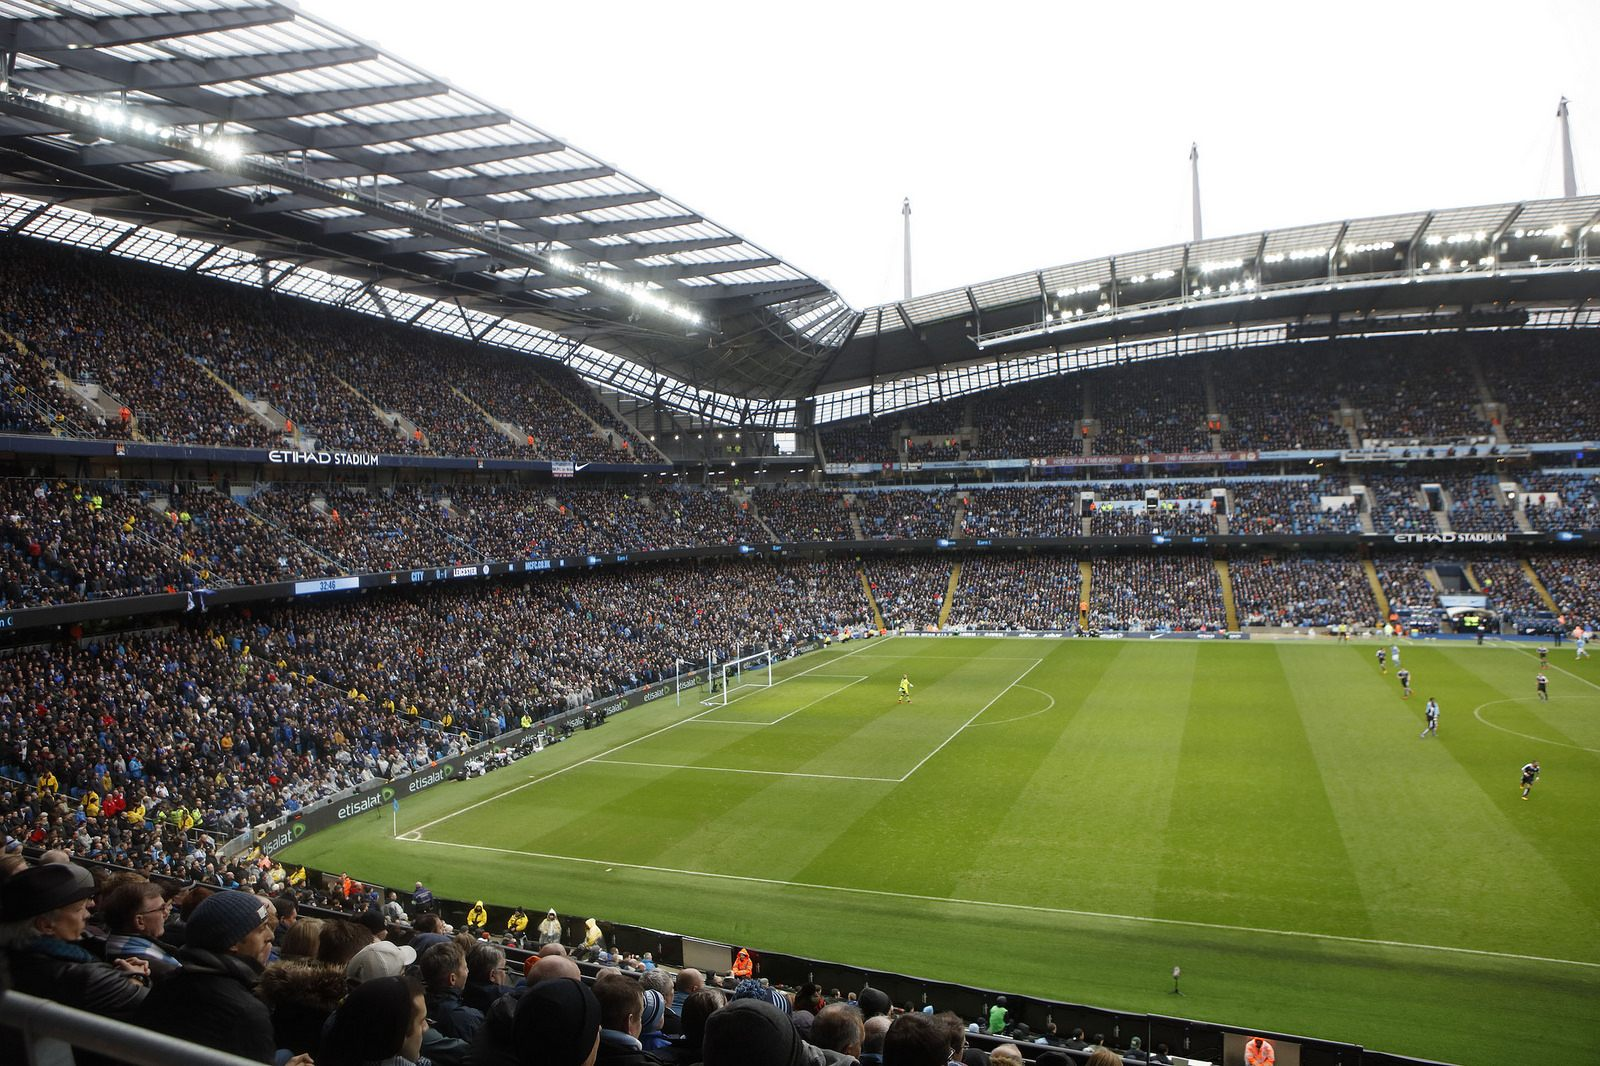 etihad stadium - photo #29